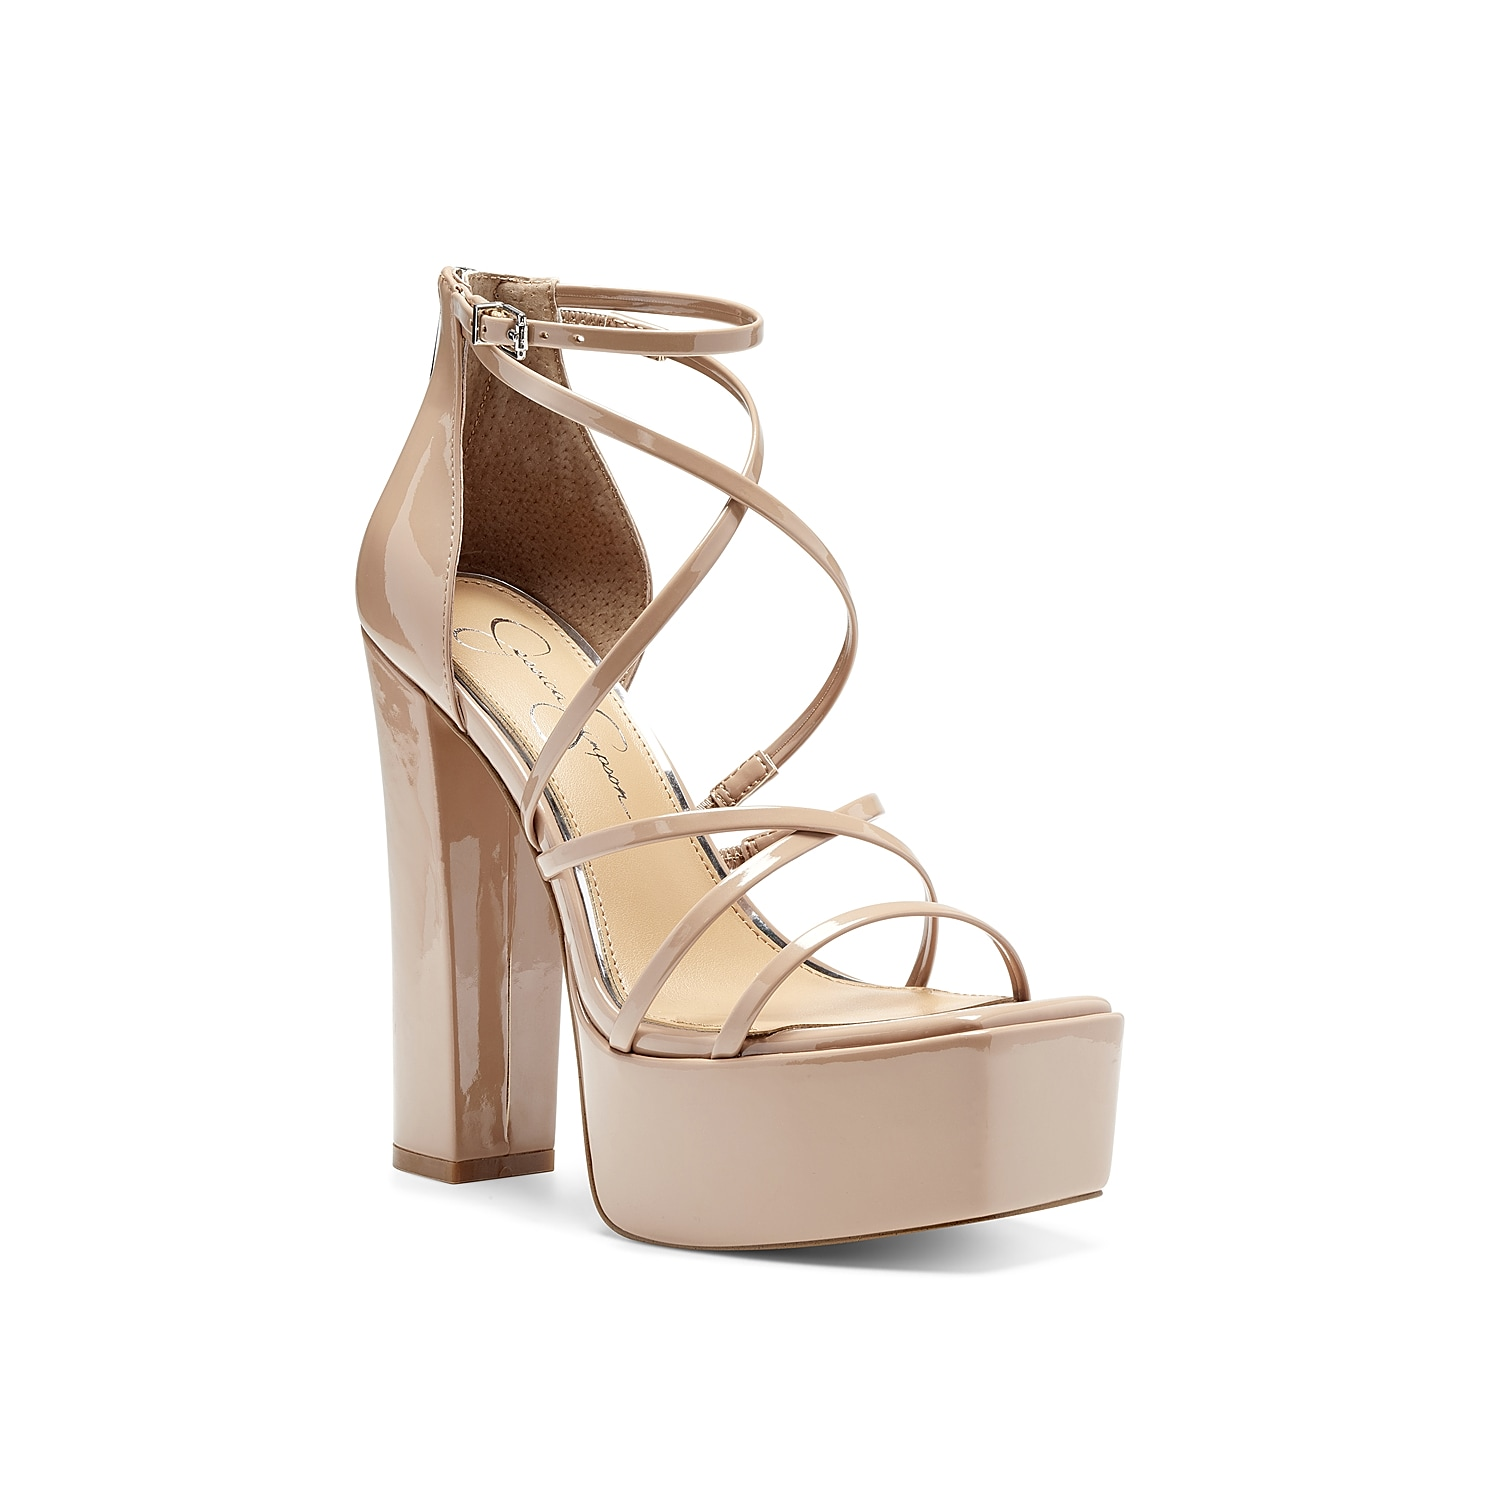 Grace your ensemble with the stunning, strappy silhouette of Jessica Simpson Mirelle platform sandal. Standing atop a high block heel, this dress sandal has an adjustable ankle strap with buckle and back zipper access for a convenient fit.